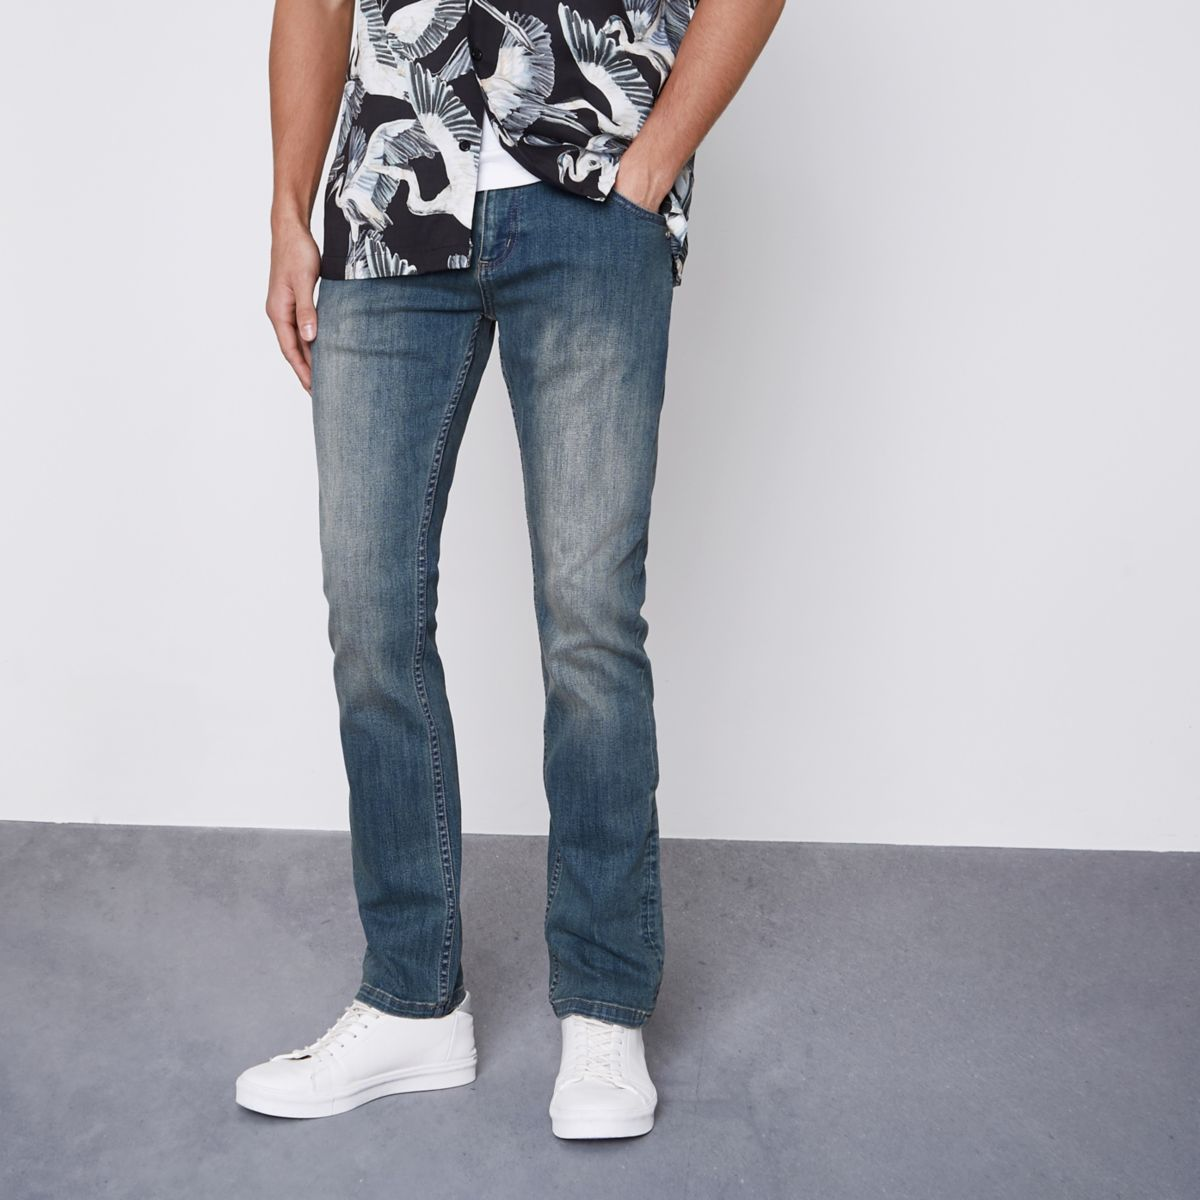 Monkee Genes - Blauwe slim-fit jeans